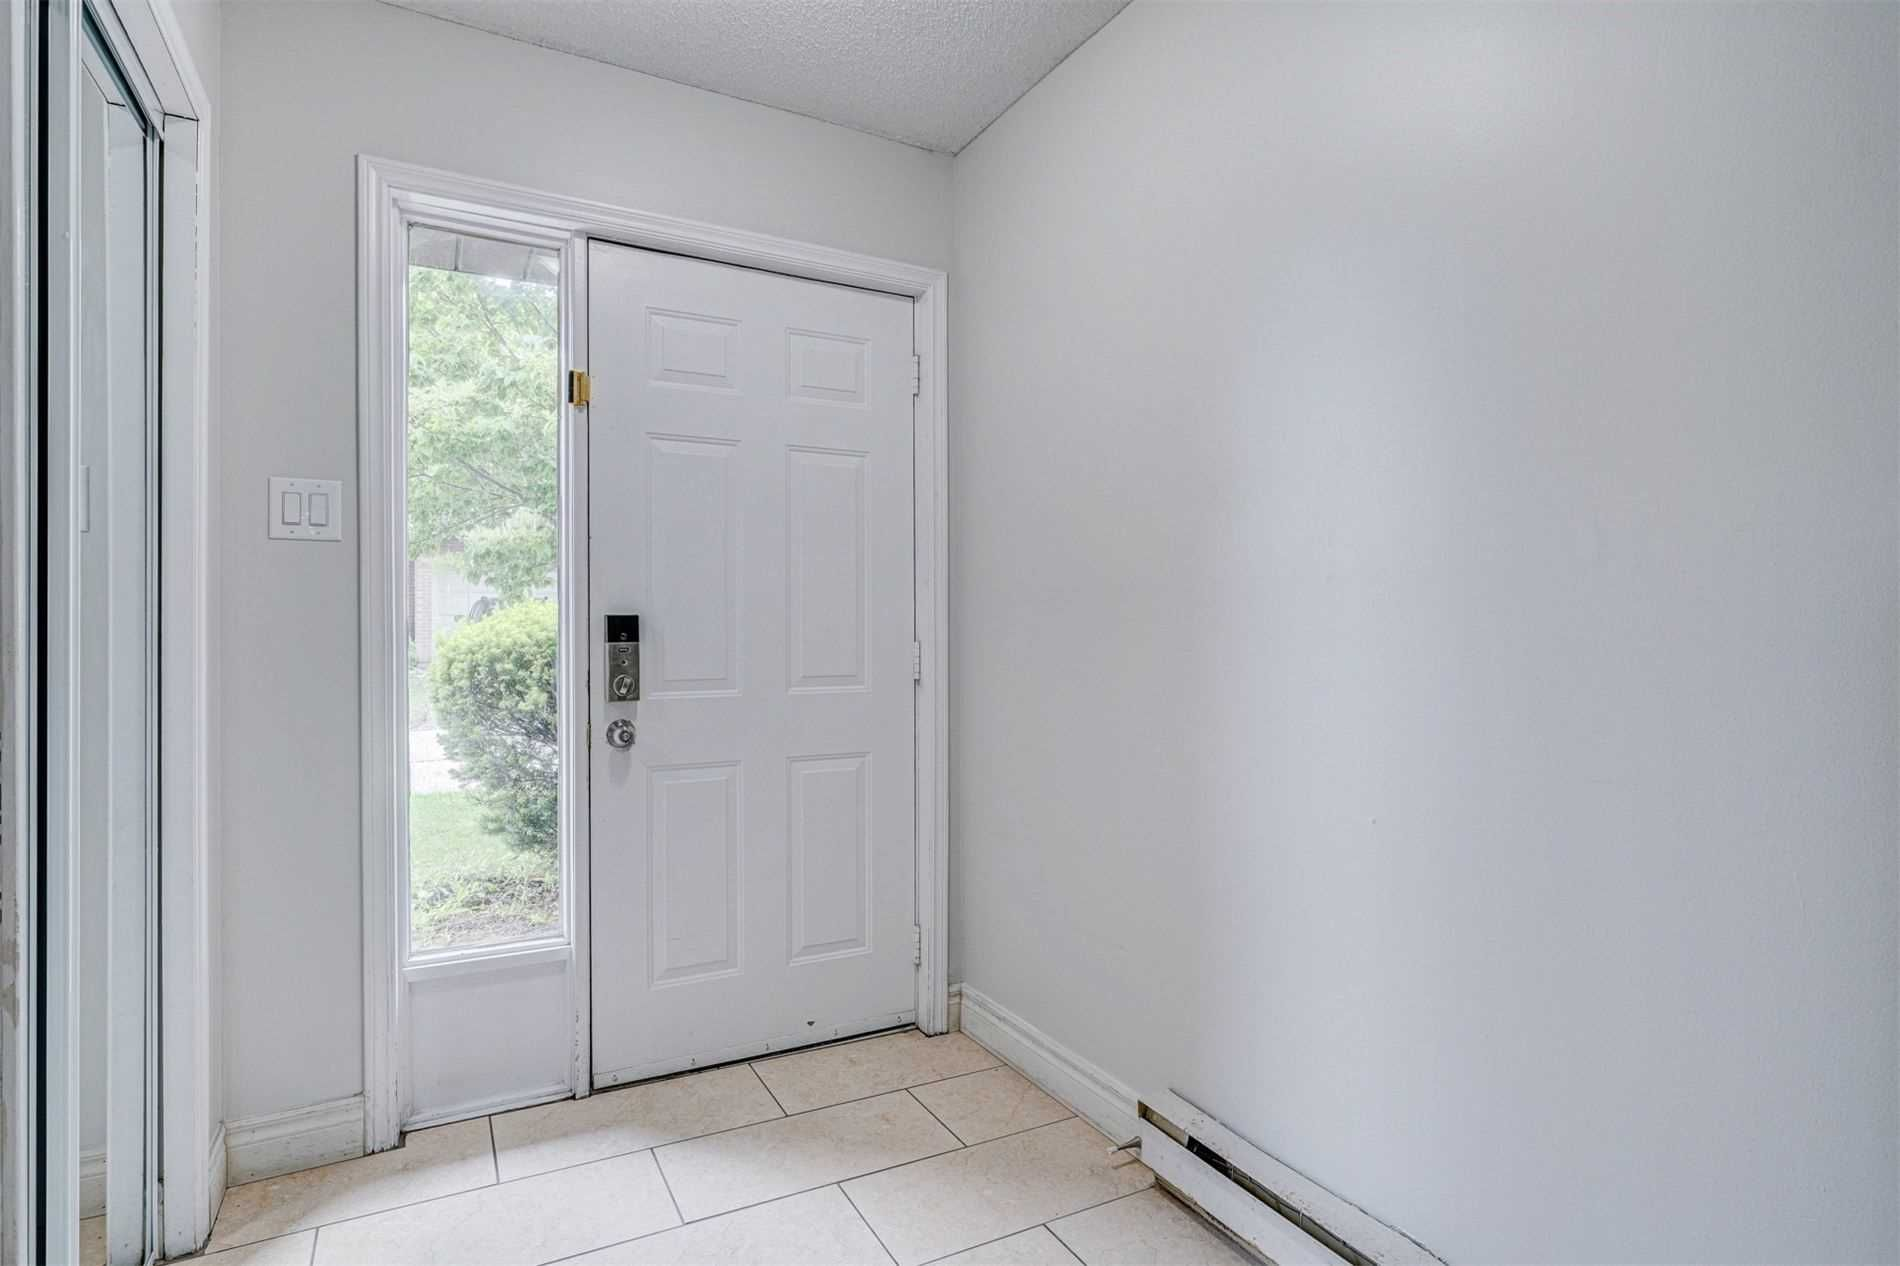 445 Stone Church Rd W, unit 24 for rent in Toronto - image #2